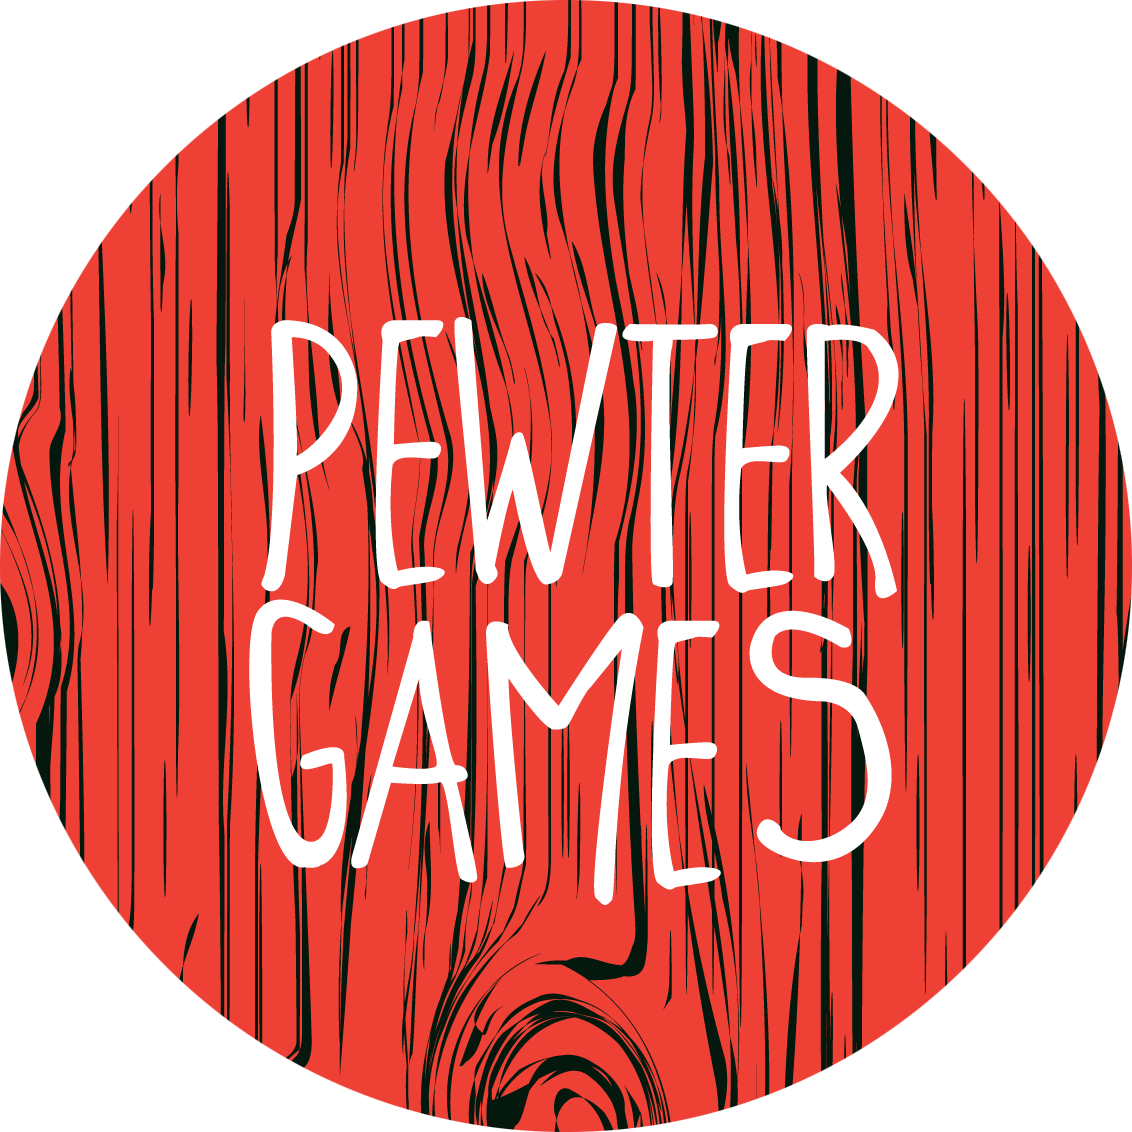 Pewter Games Studios